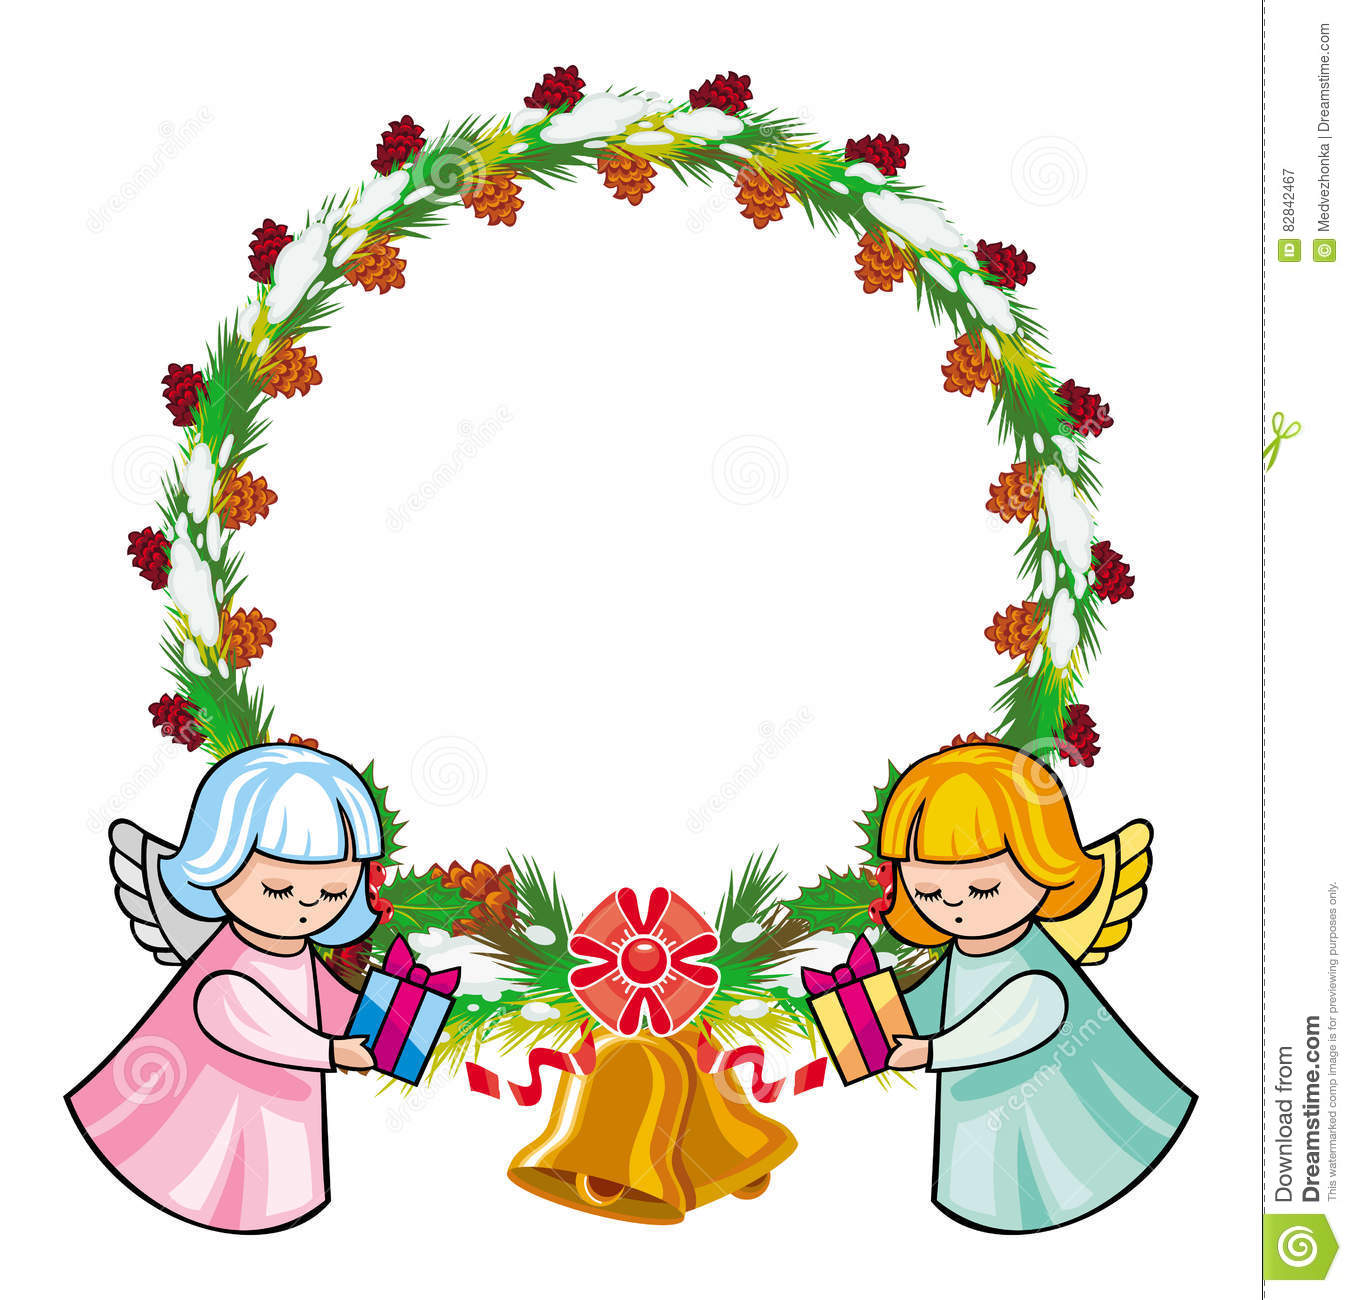 Round Holiday Garland With Ornaments And Angels Bring Presents.